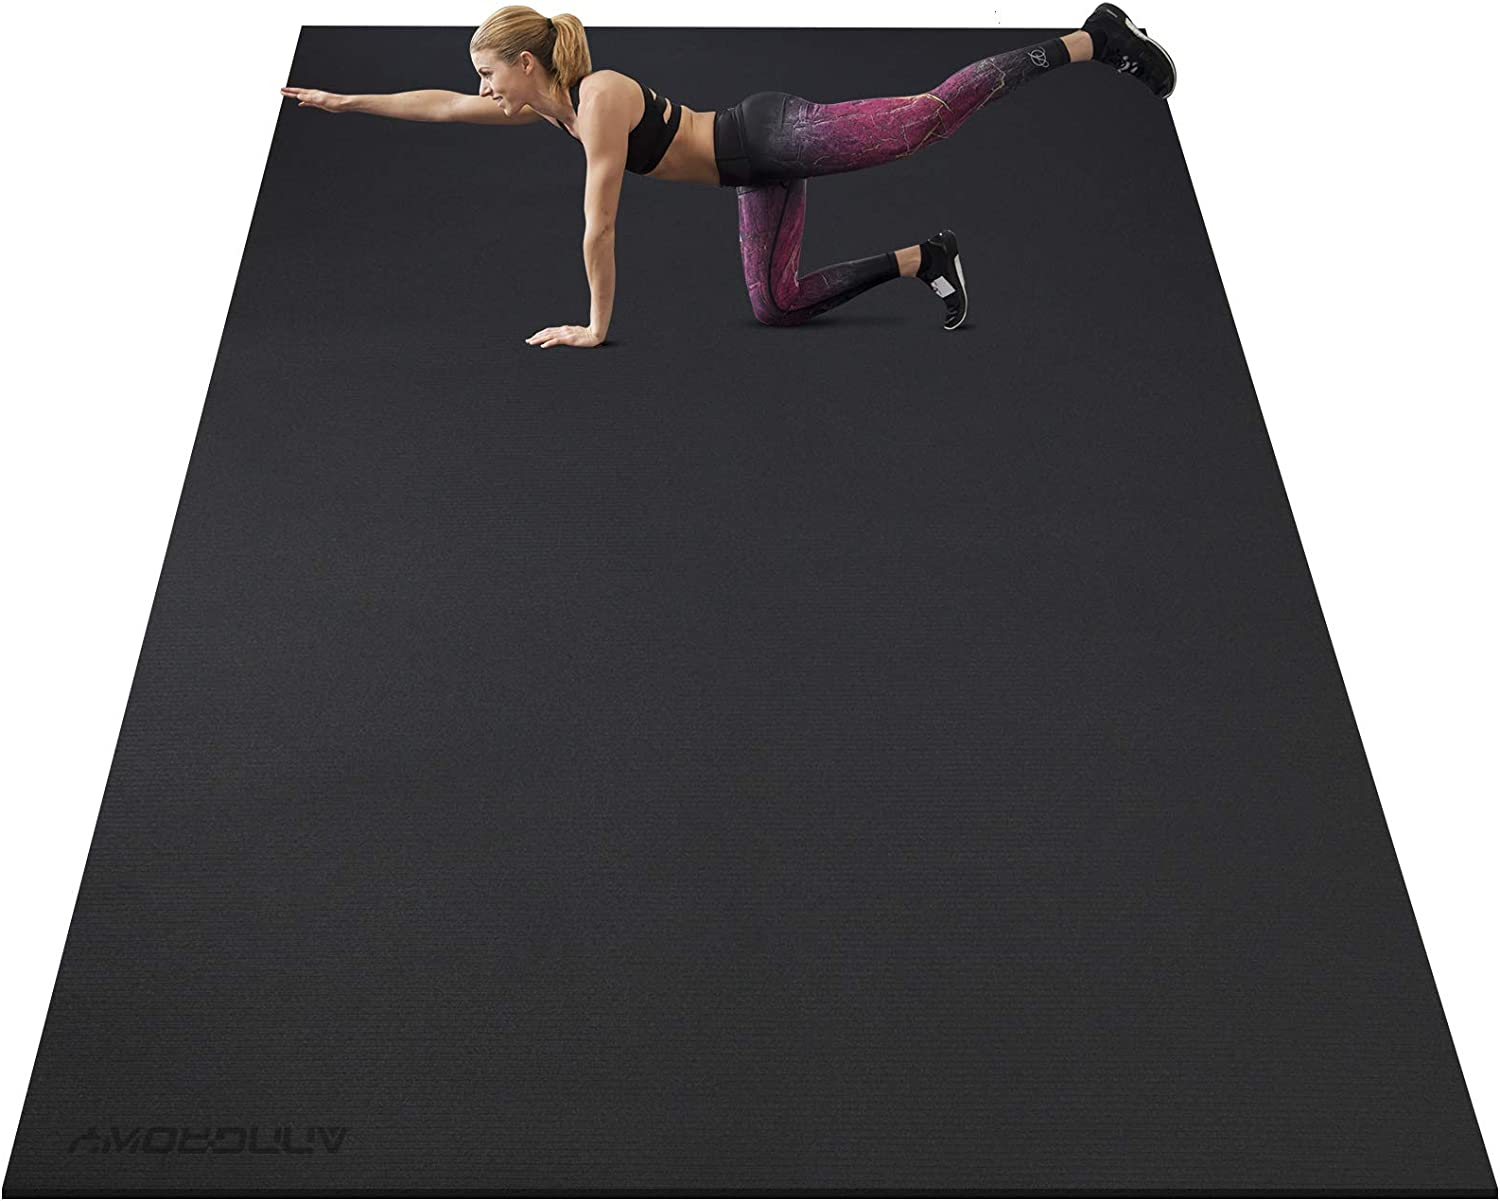 Large Exercise Mat 8'x5'x7mm Workout Mat for Home Gym Mats Exercise Gym Flooring Rubber Fitness Mat Large Yoga Mat Cardio Mat for Weightlifting, Jump Rope, MMA, Stretch, Plyo, HIIT, Shoe-Friendly